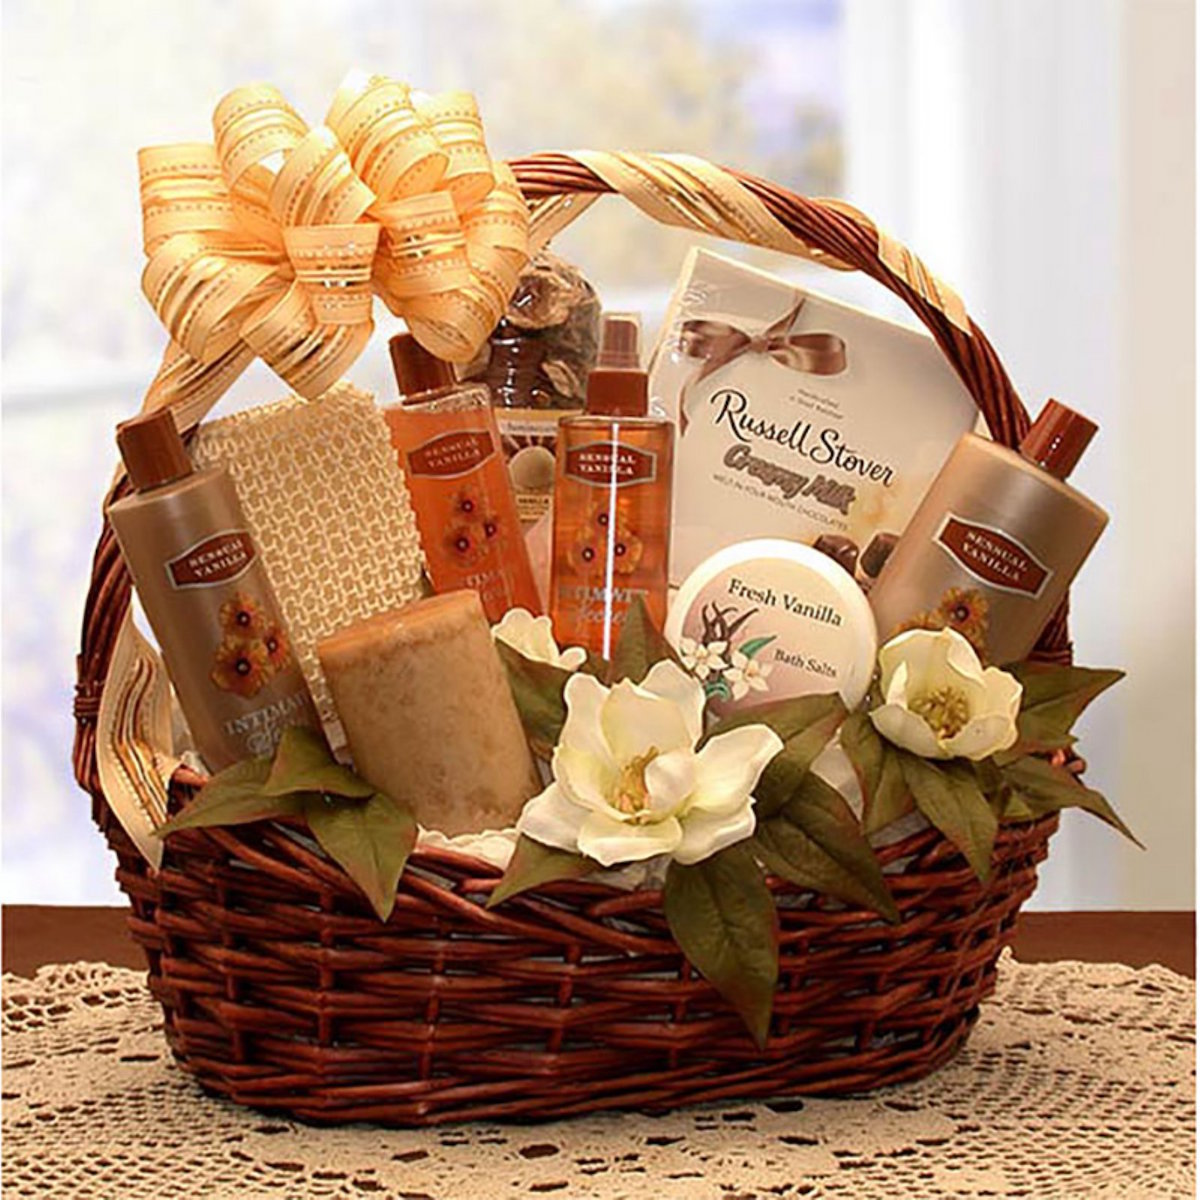 Hayneedle Essence of Luxury Bath Gift Basket